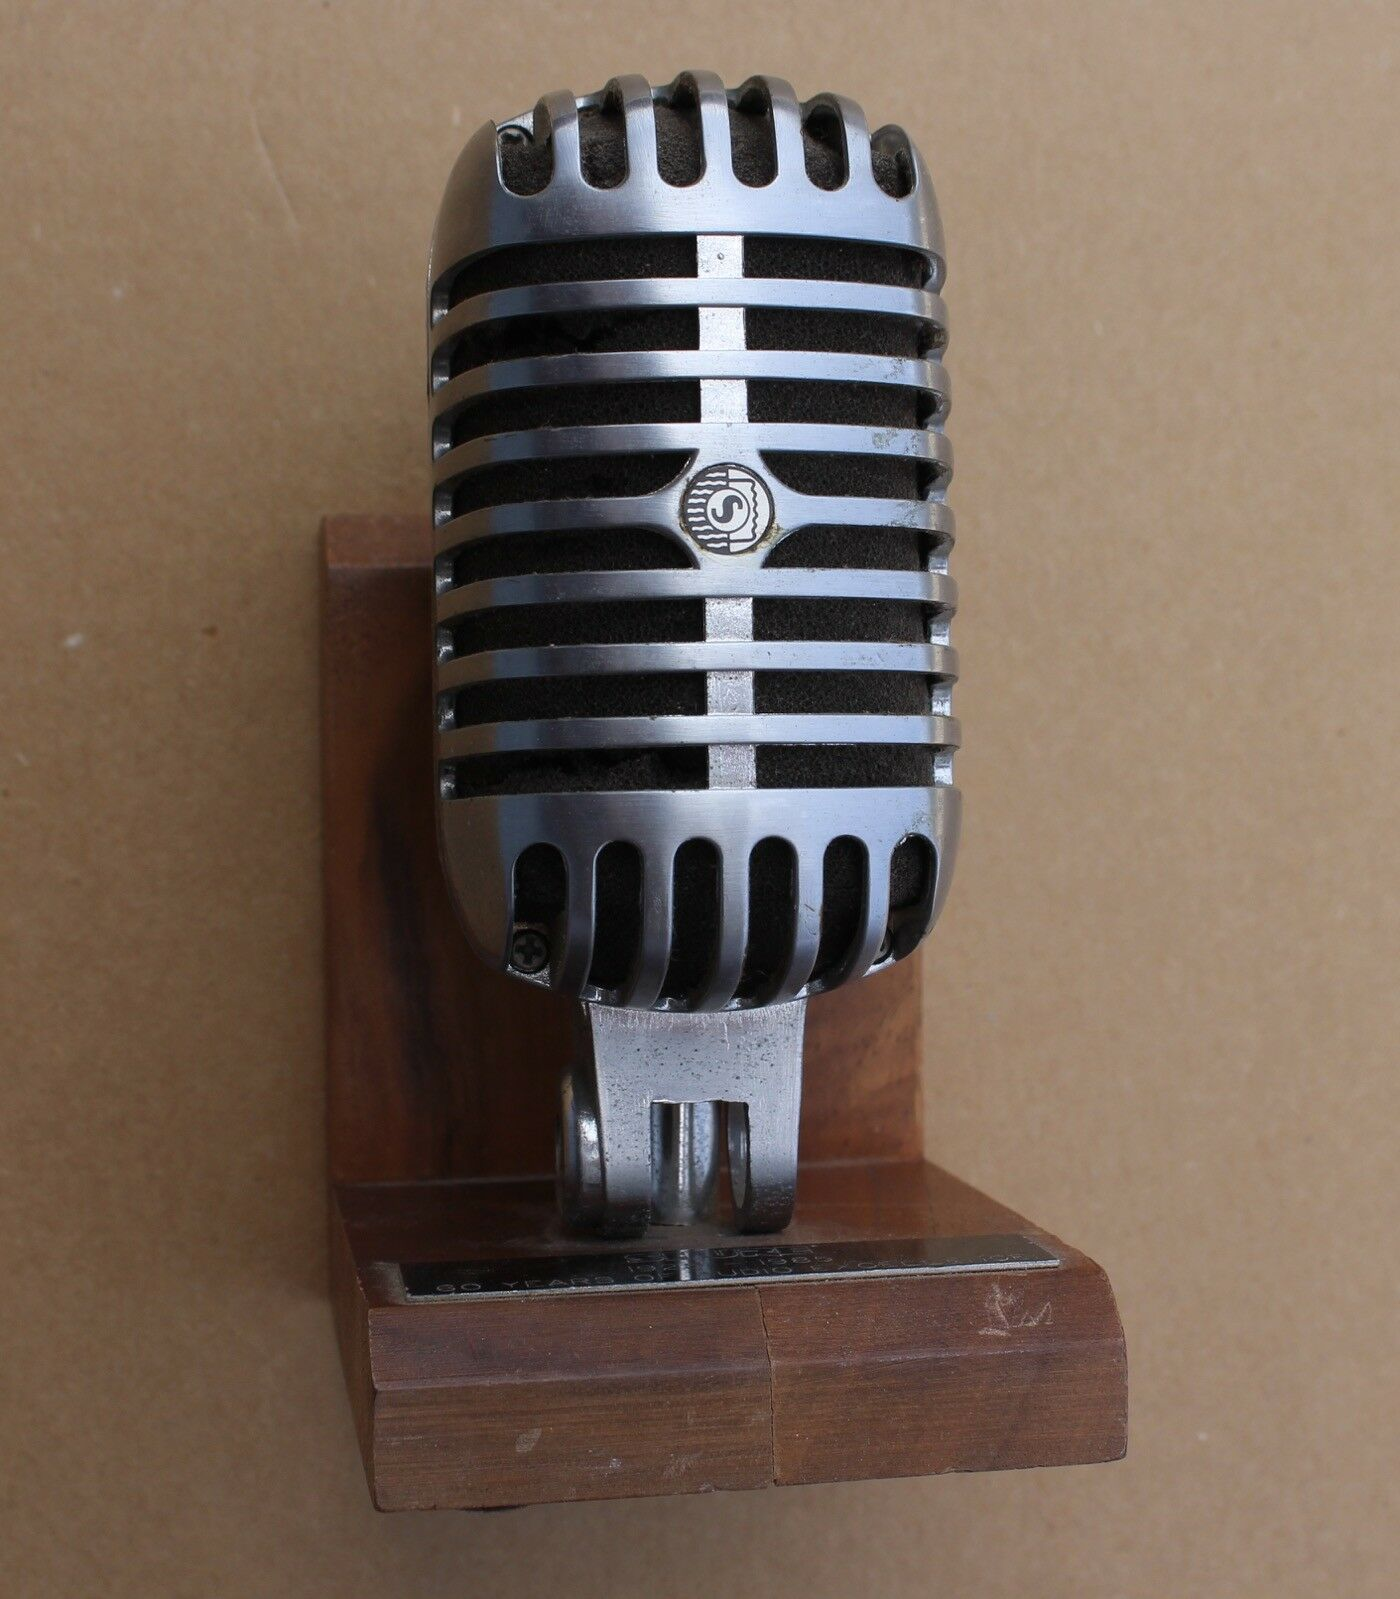 Rare 1925-1985 Shure Microphone Service Award Mic 60 Year Anniversary Plaque